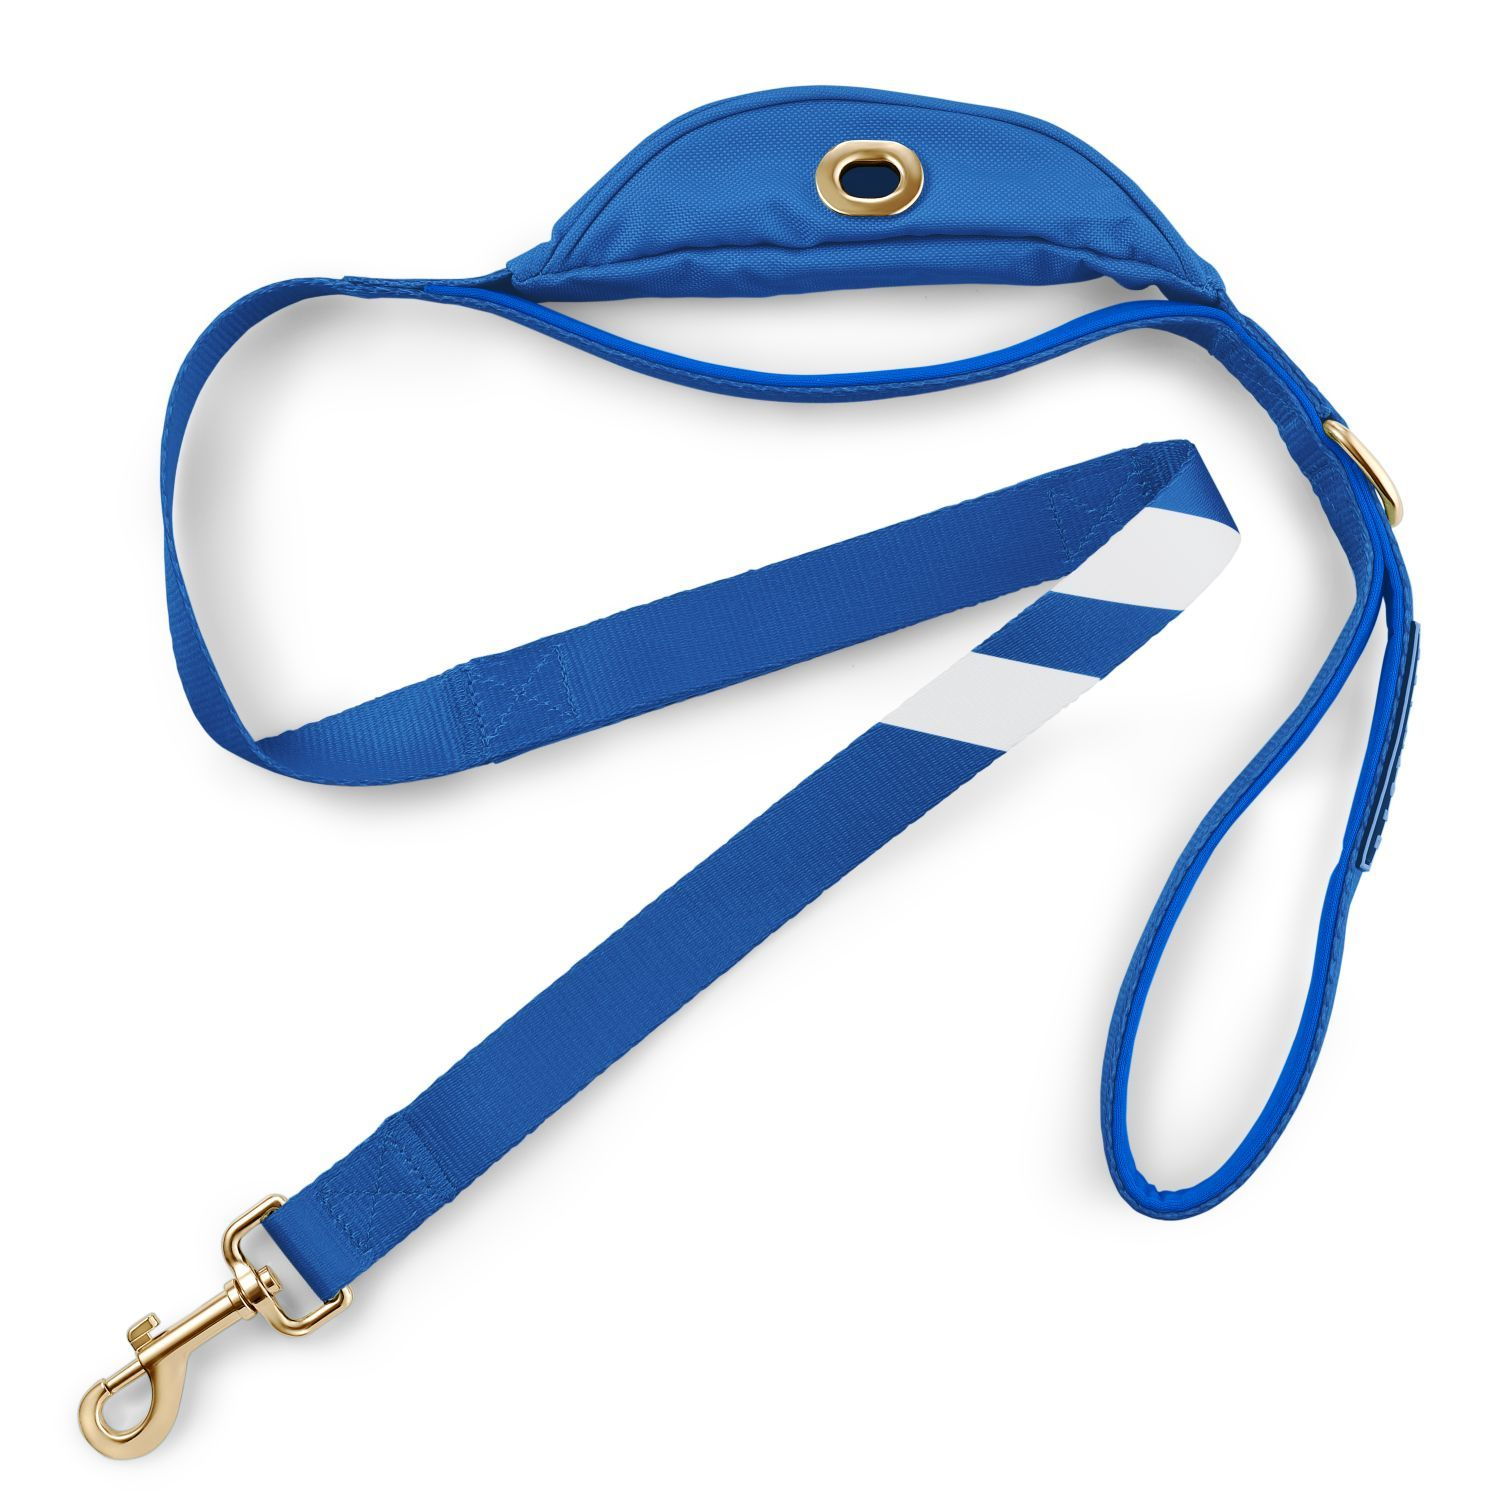 Loyal Blue - Cargo Leash leash bestlifeleashes